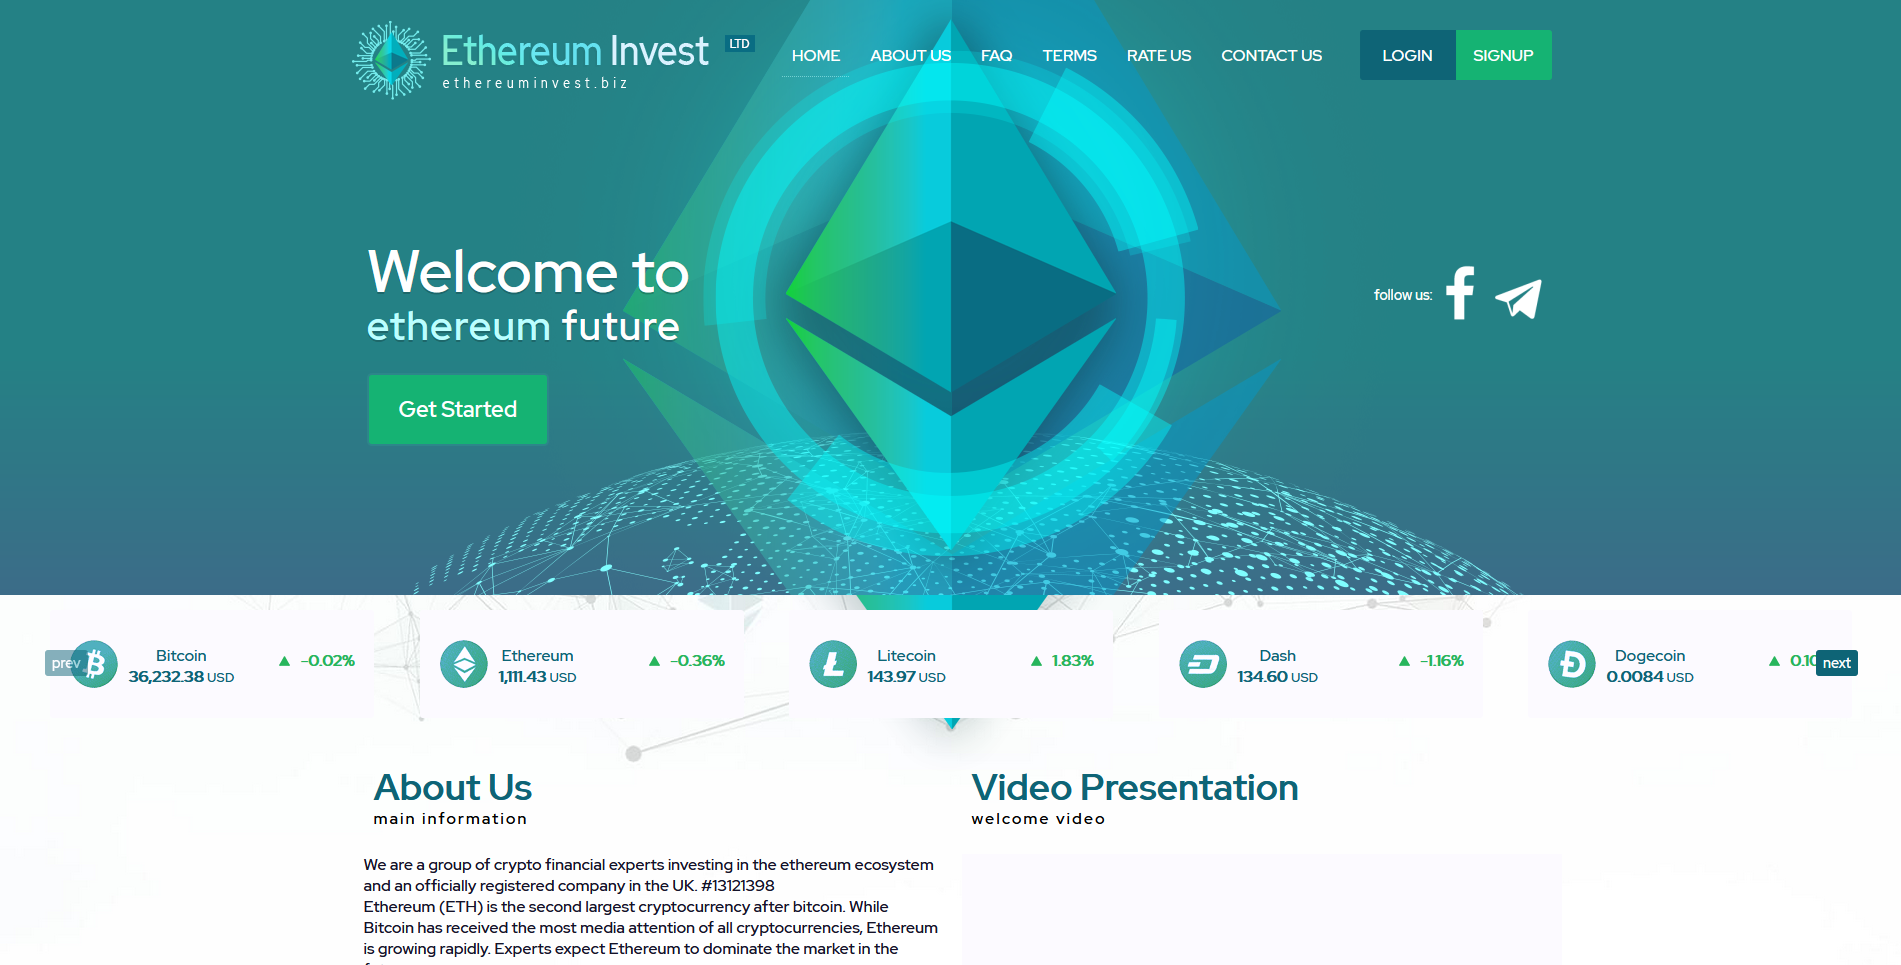 Ethereuminvest